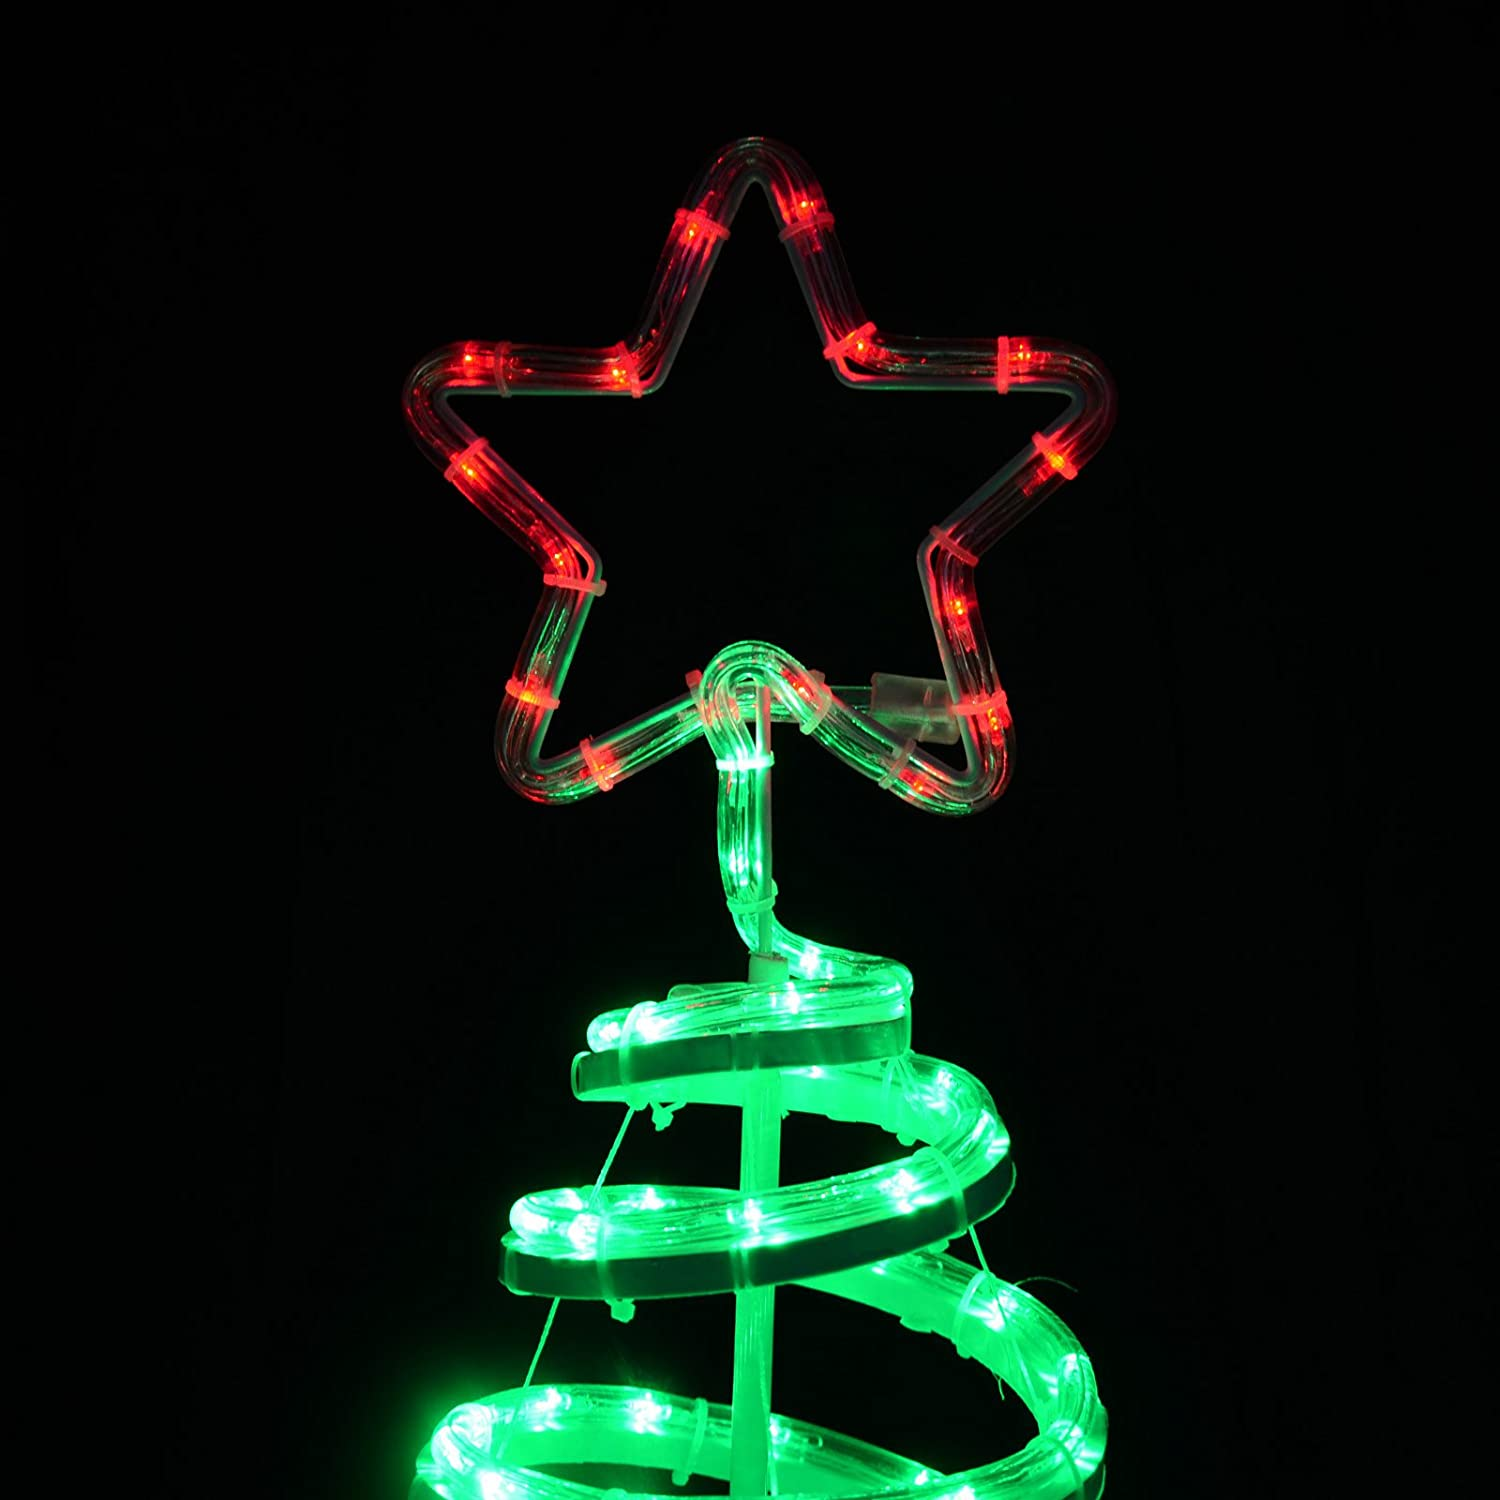 Green spiral tree star led rope light 120cm christmas decoration green spiral tree star led rope light 120cm christmas decoration indooroutdoor amazon kitchen home aloadofball Gallery